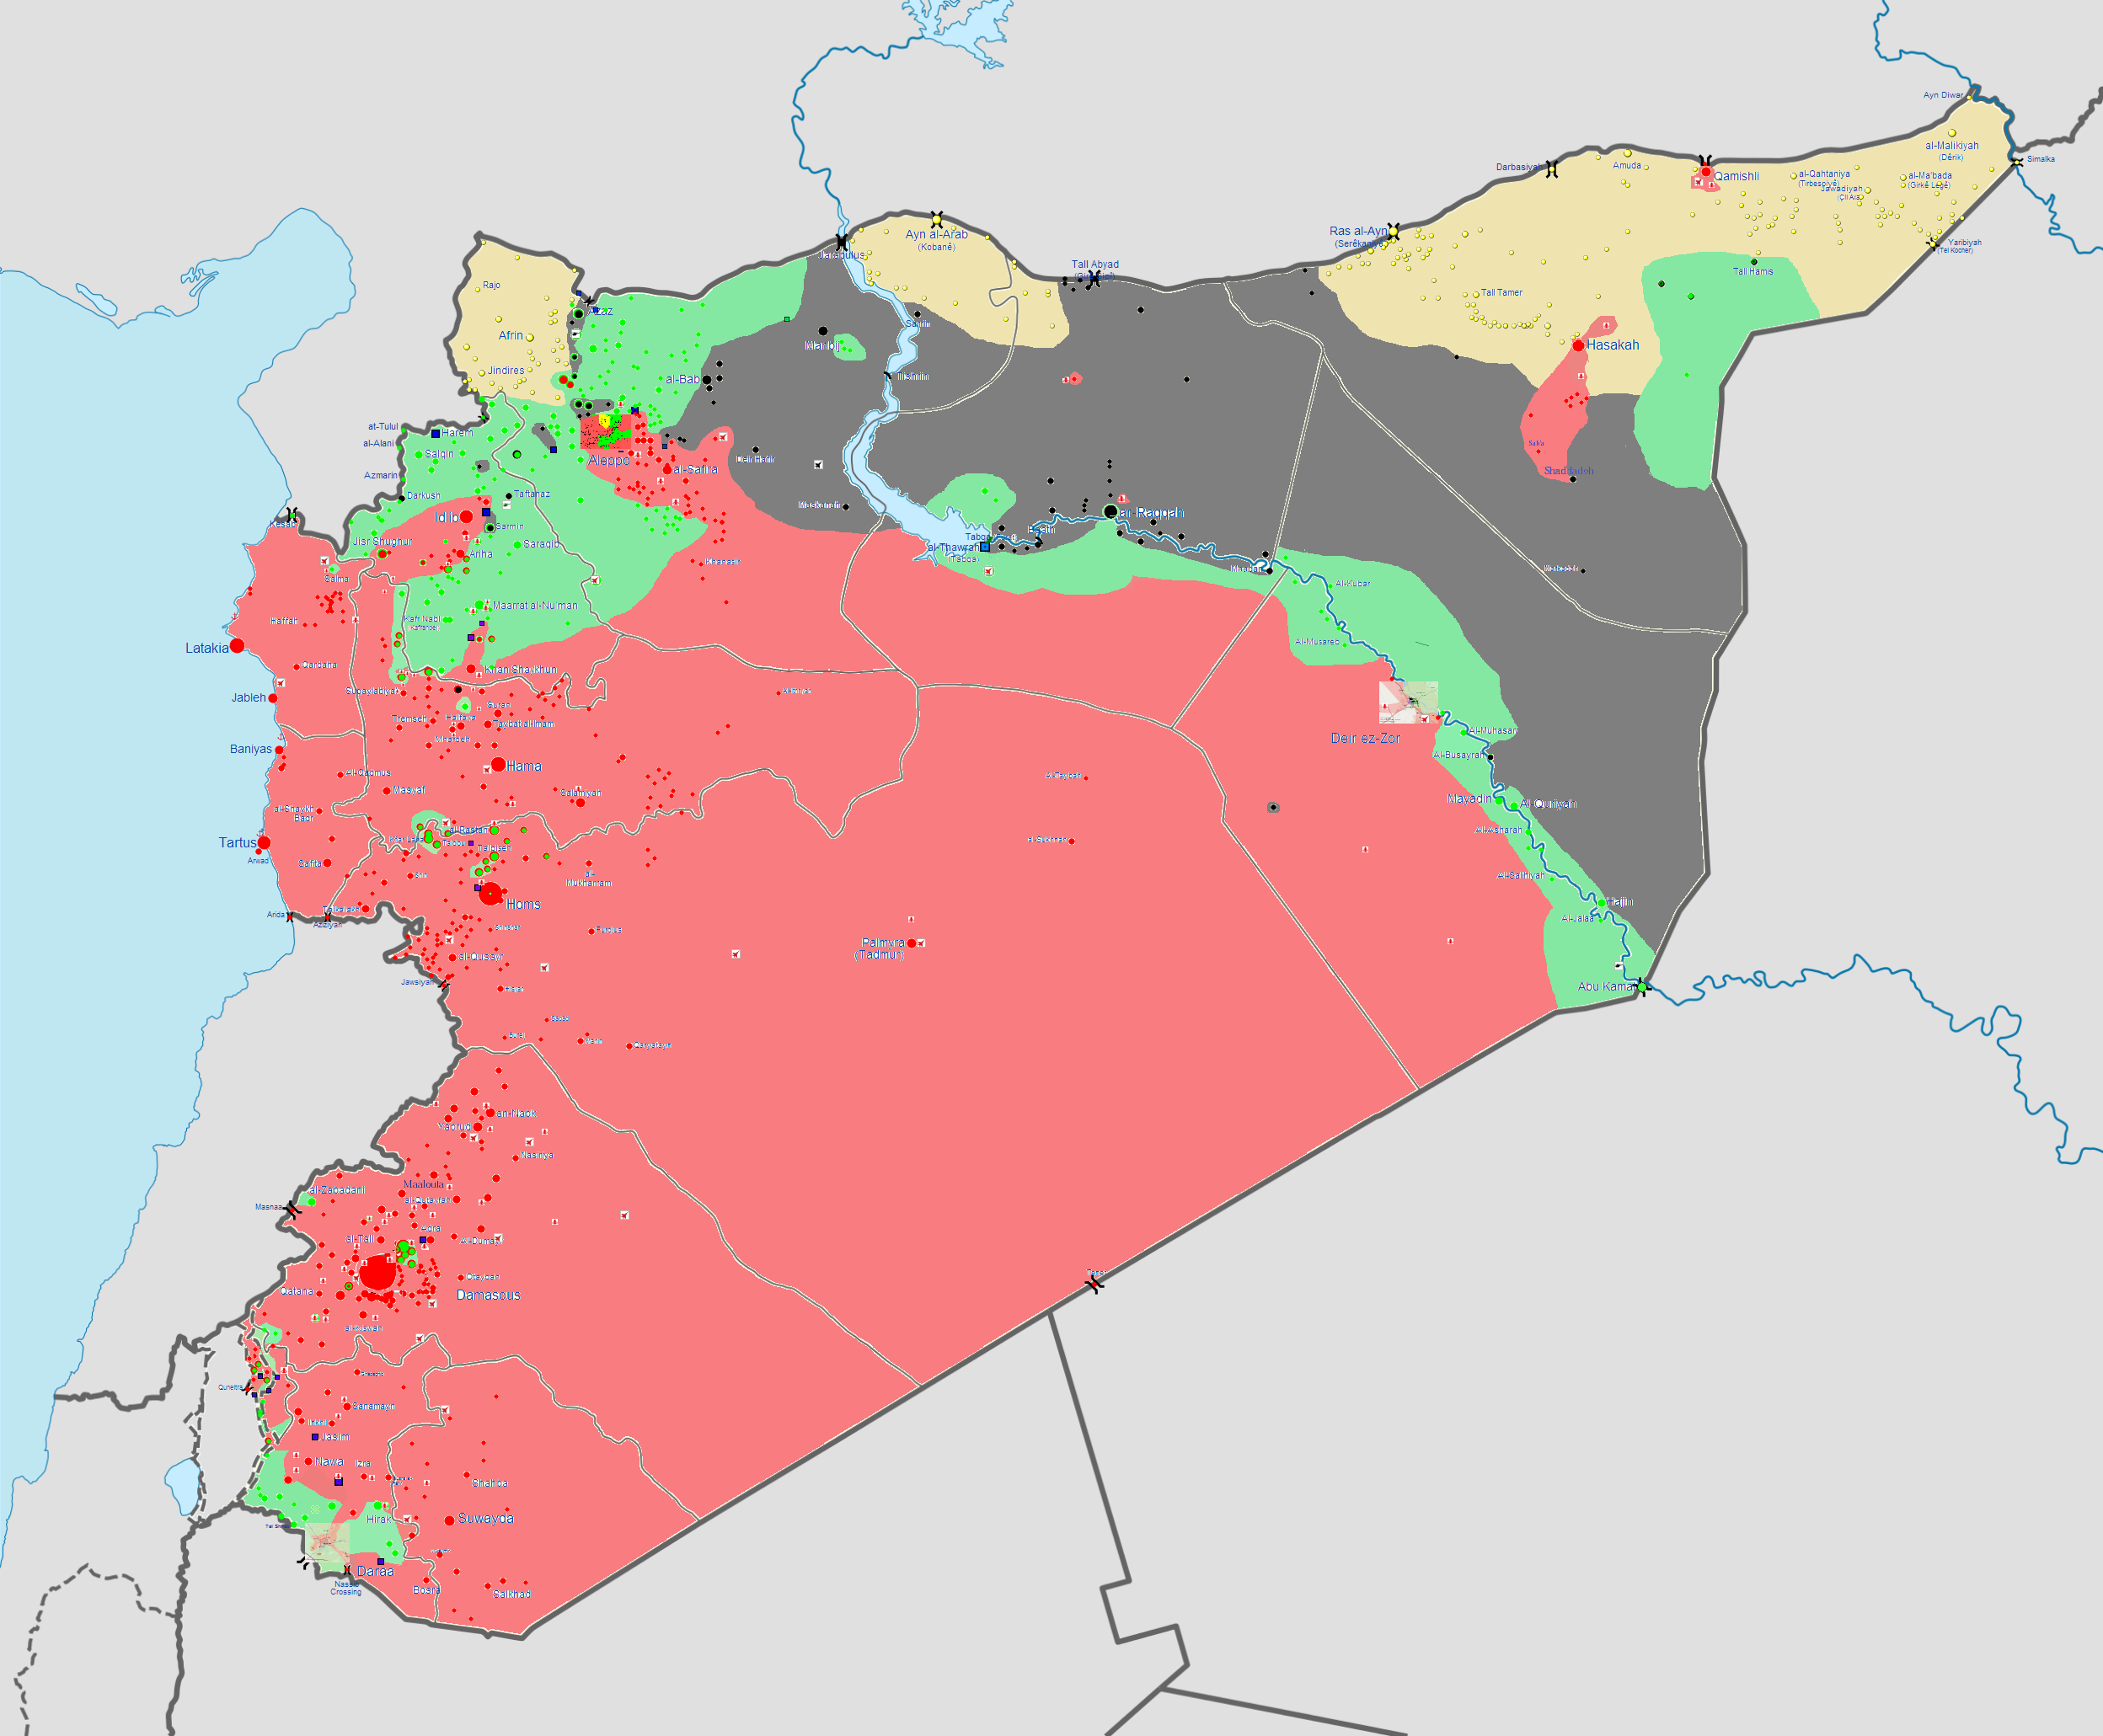 civil war in syria Syrian civil war: syrian civil war, armed conflict that began in 2011 with an uprising against the regime of syrian president bashar al-assad.